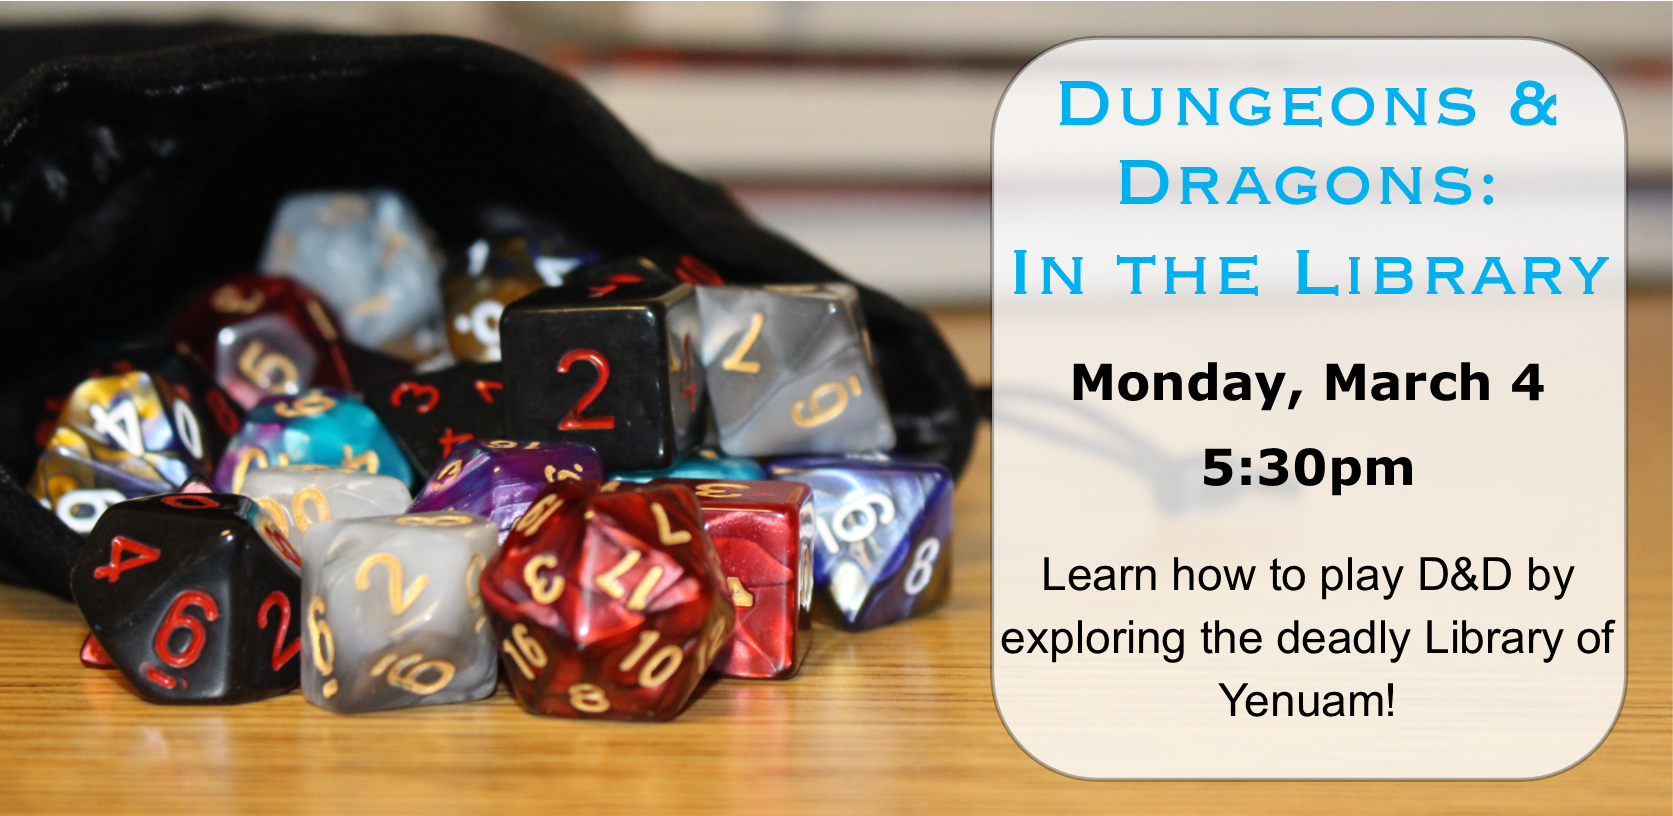 Dungeons & Dragons: In the Library